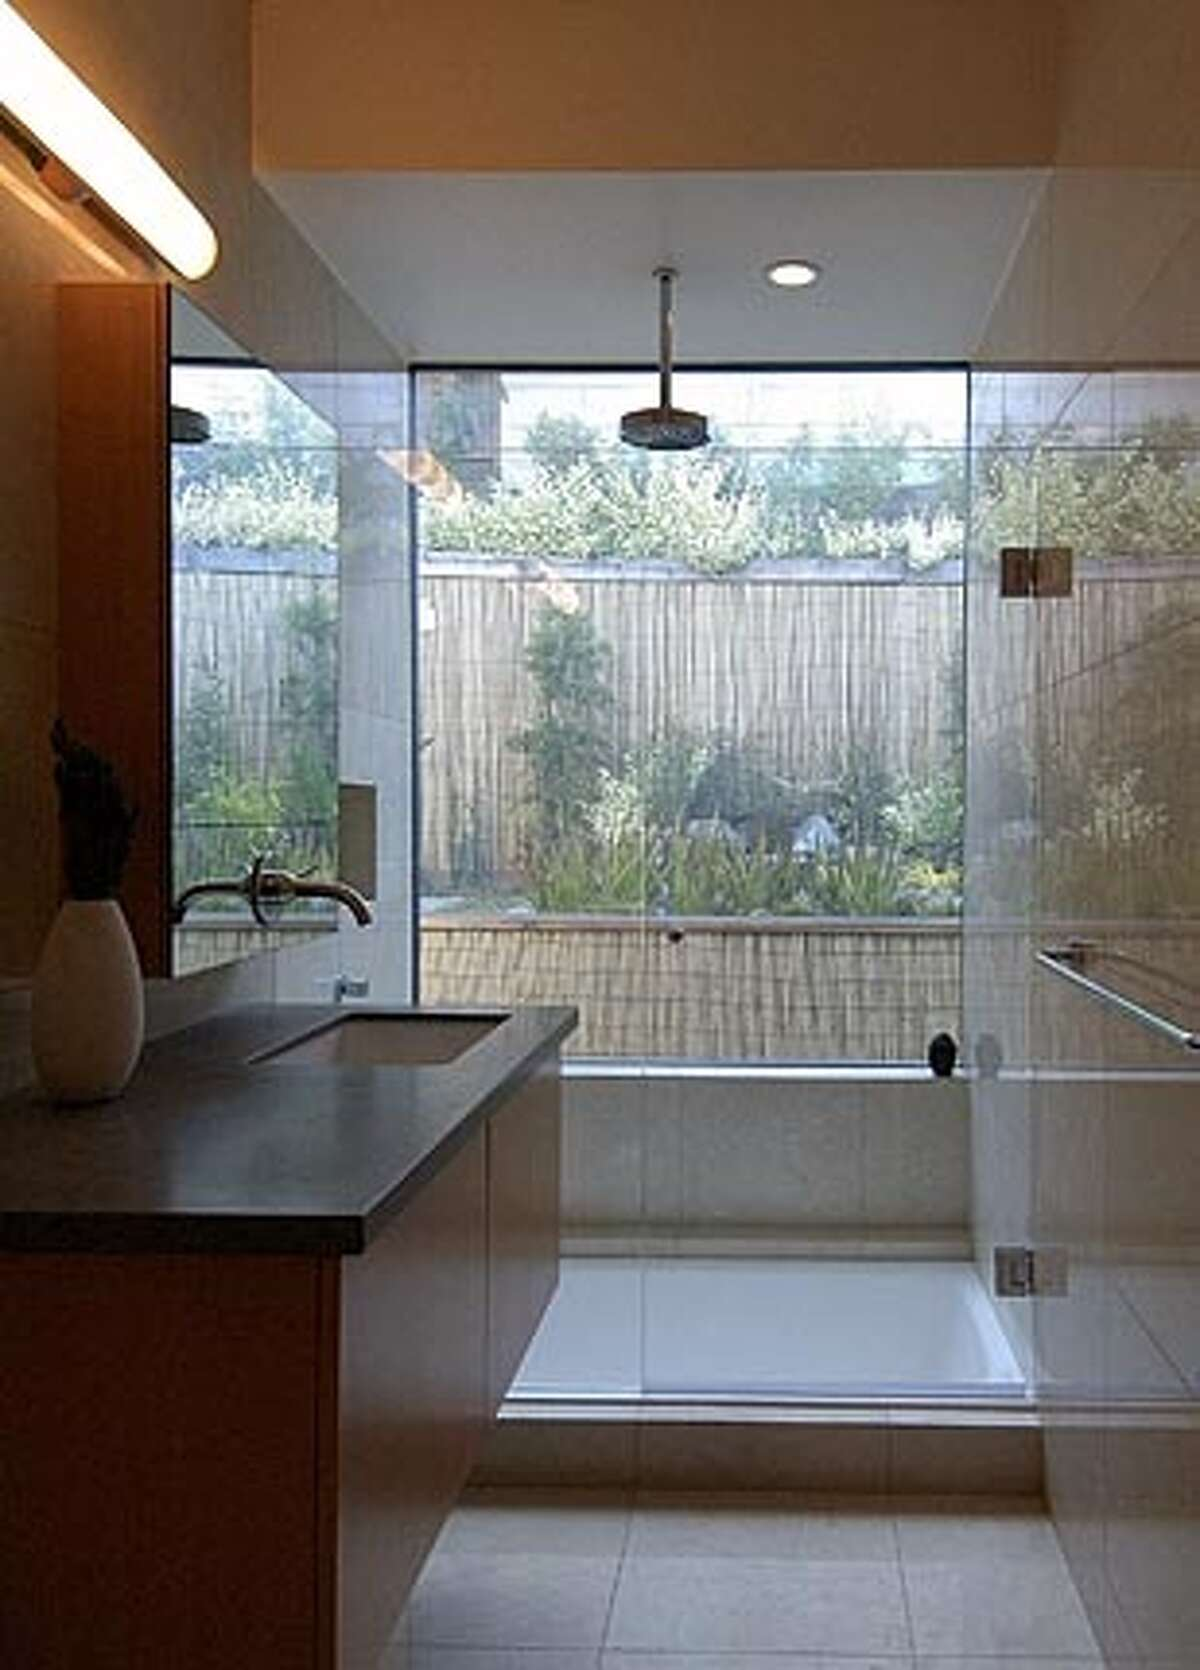 Switchable glass brings the garden into the shower of this small Noe Valley house.